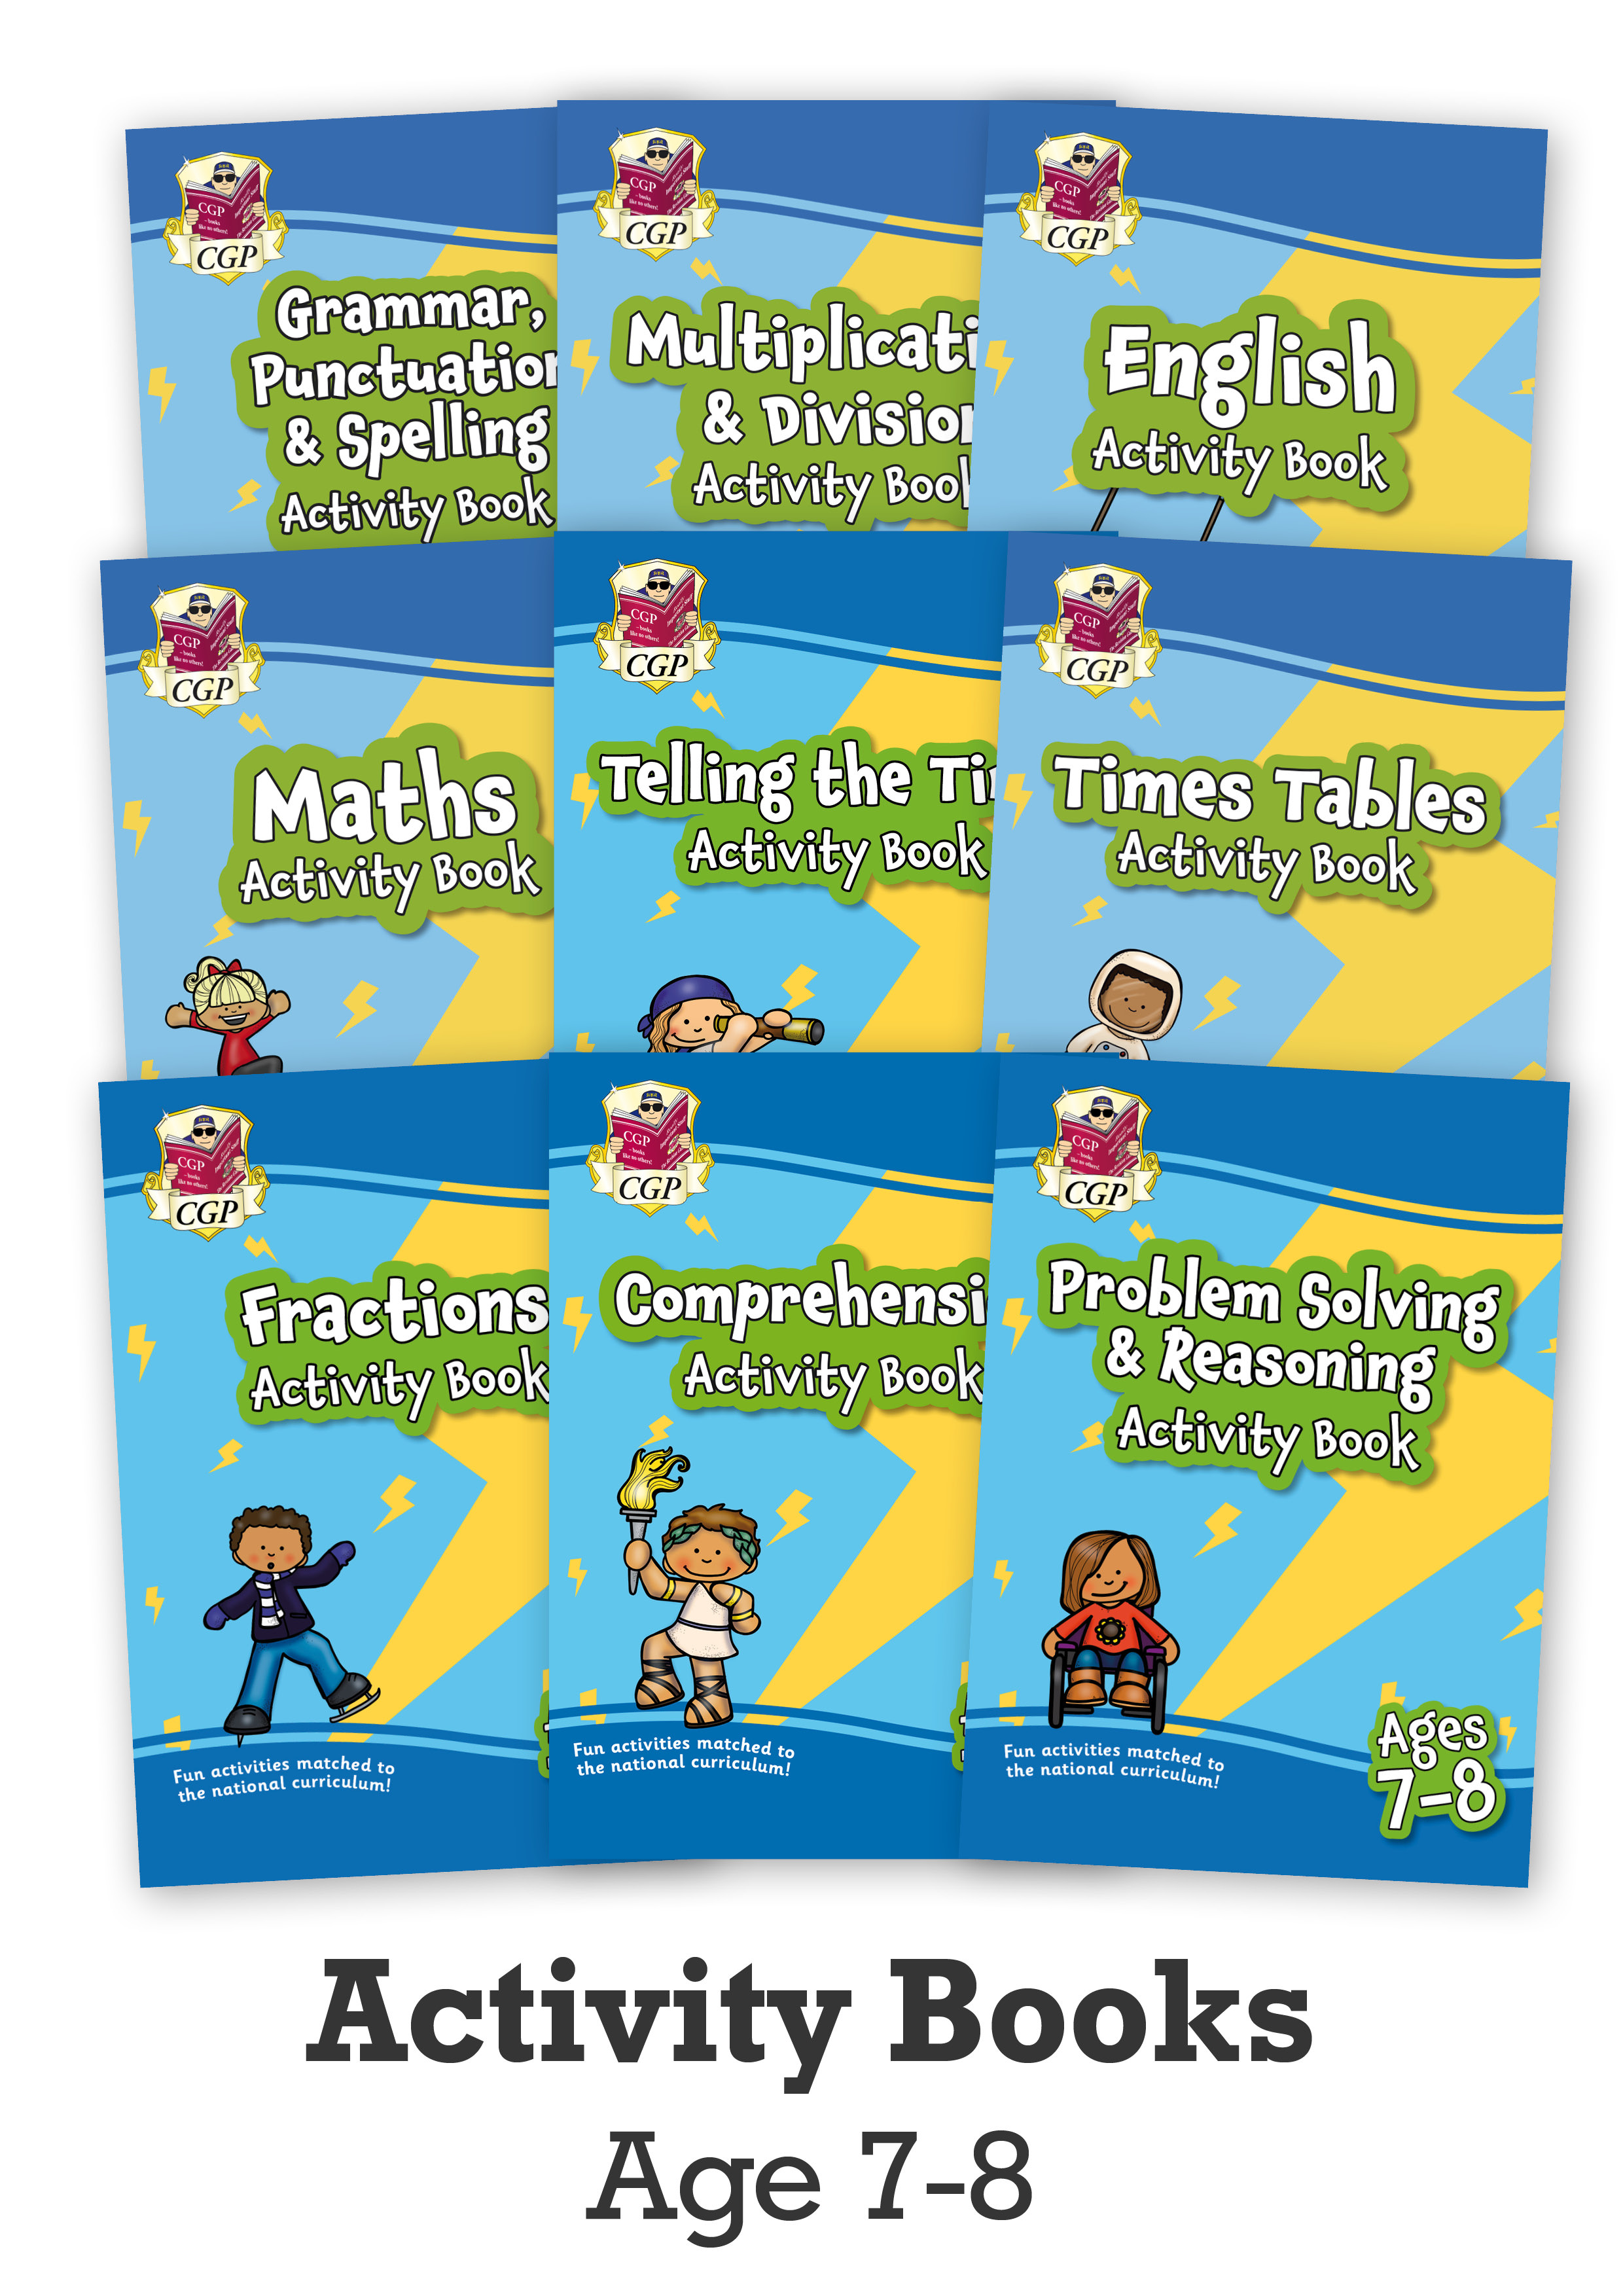 EMPF3B24 - New Ages 7-8 Activity Books - 9-book bundle